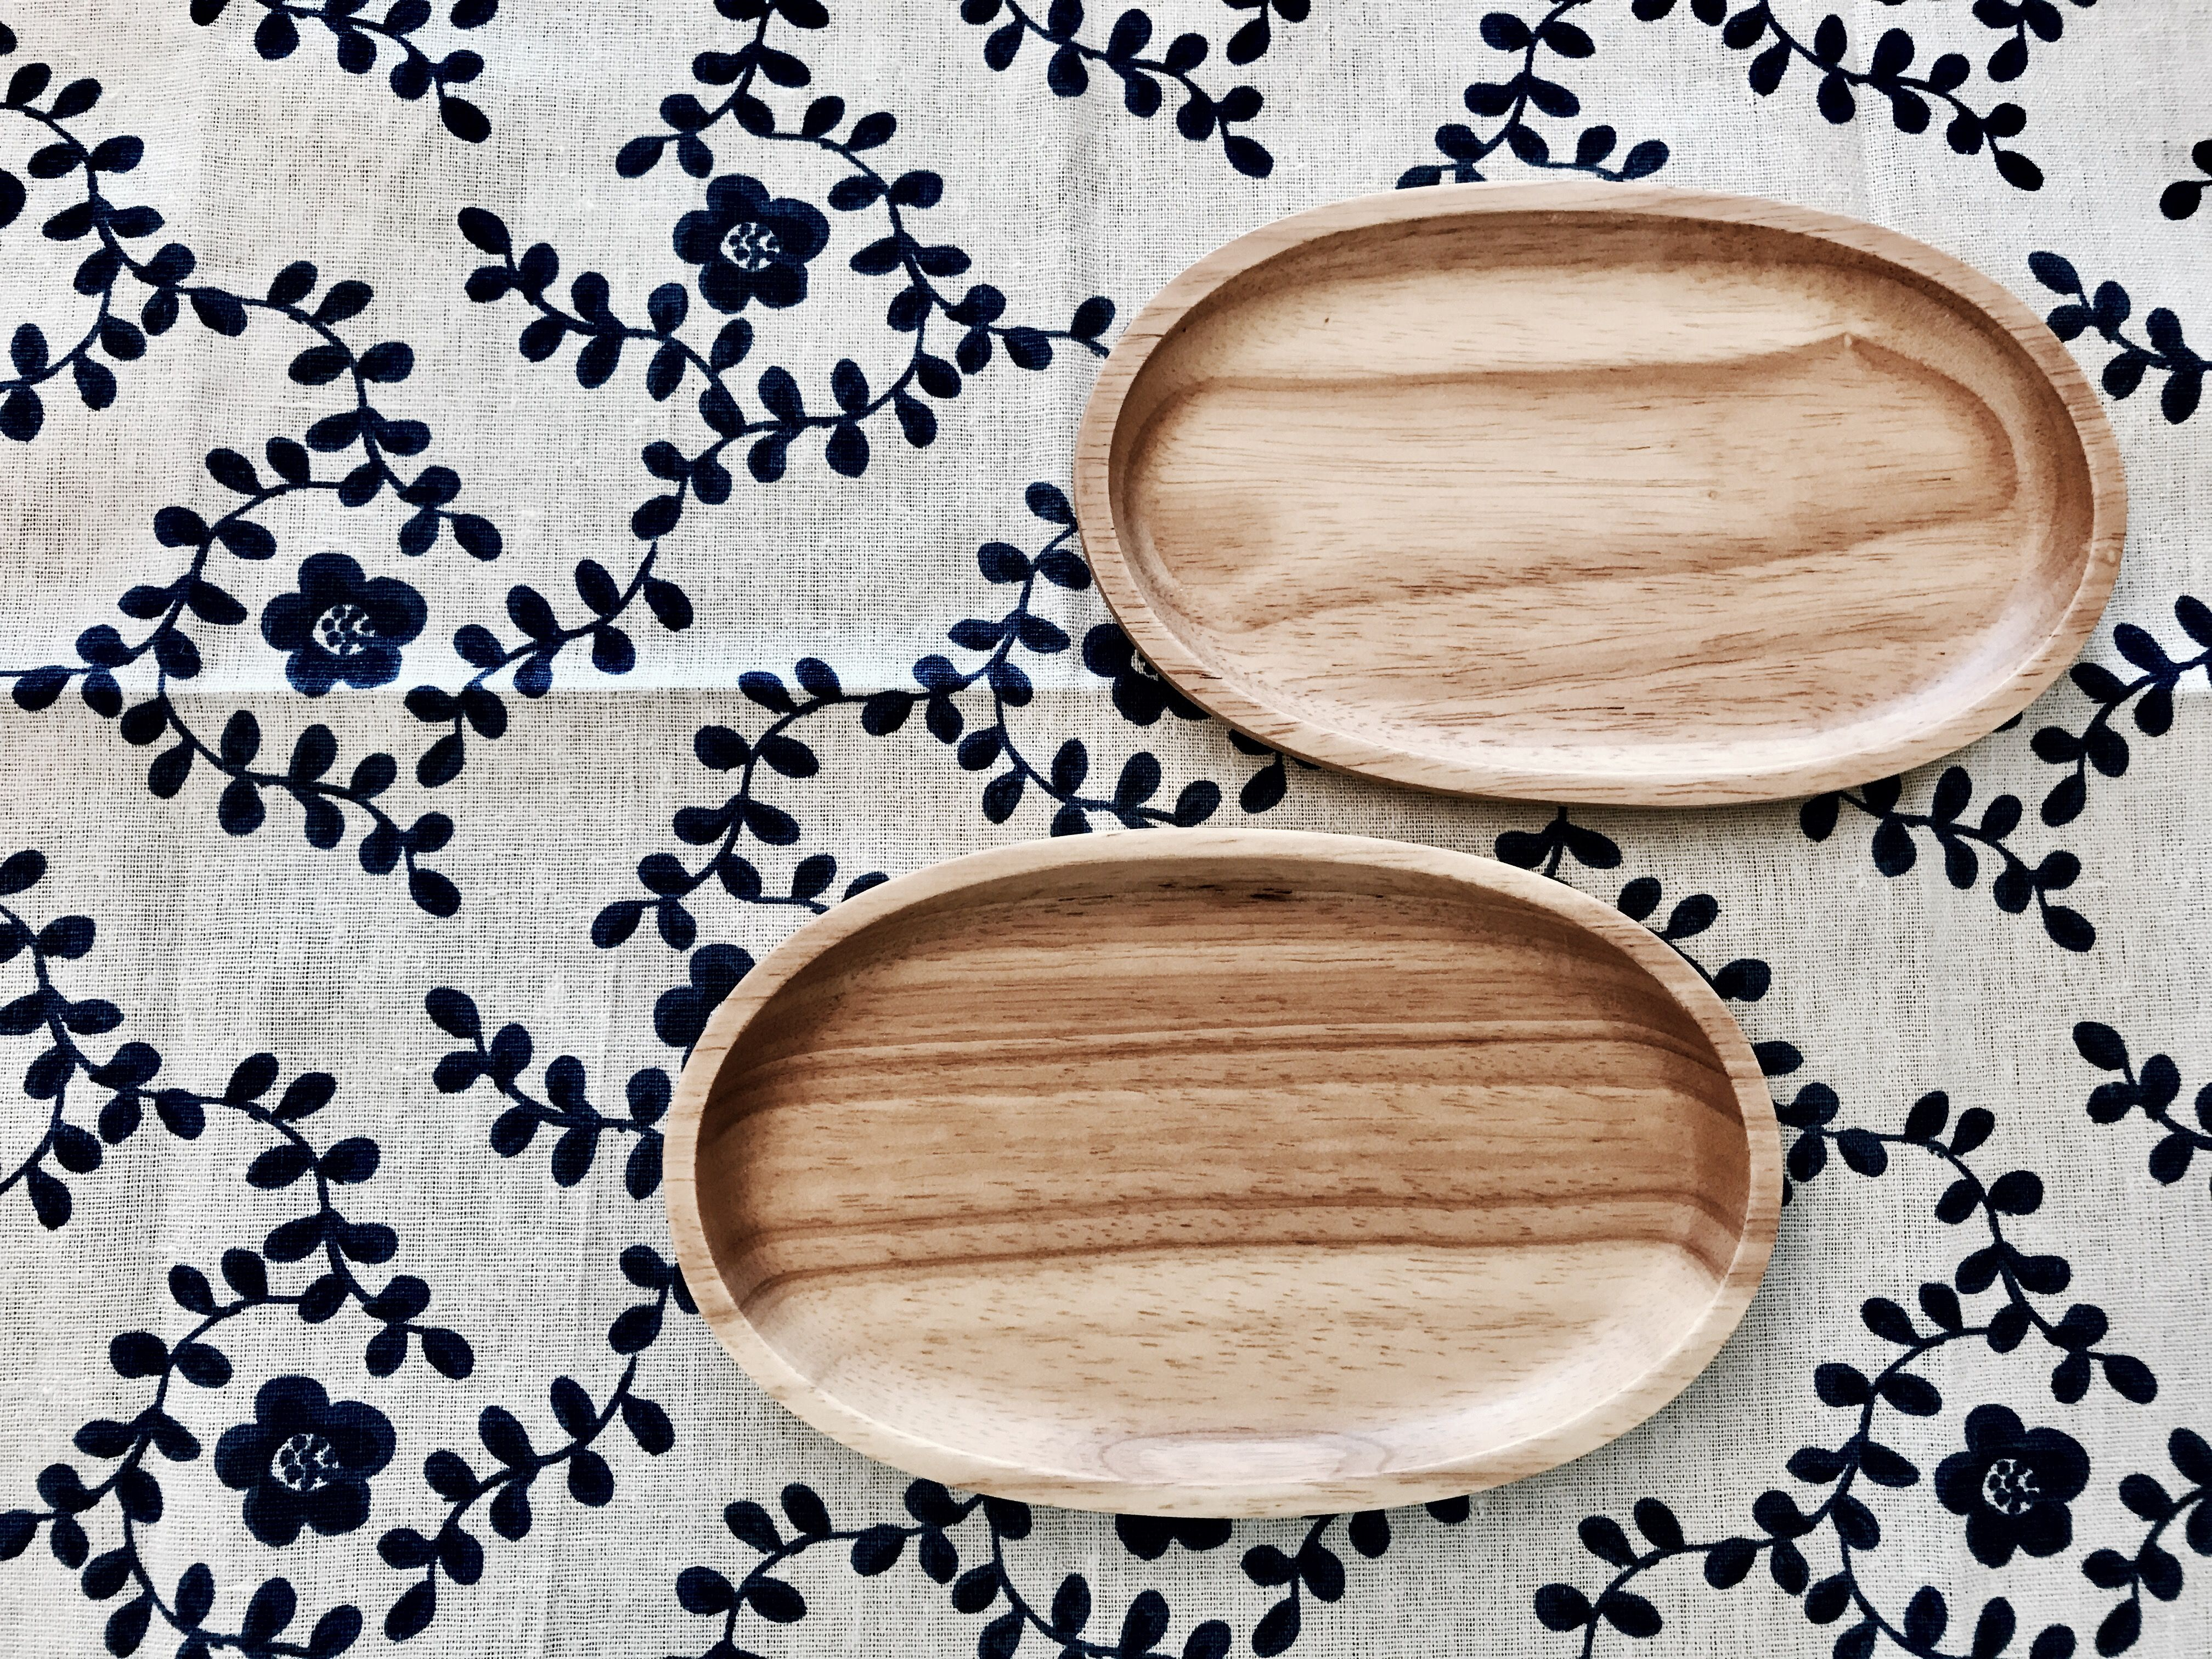 Classic Thai Wooden Snack Plate Tableware Plates Snacks